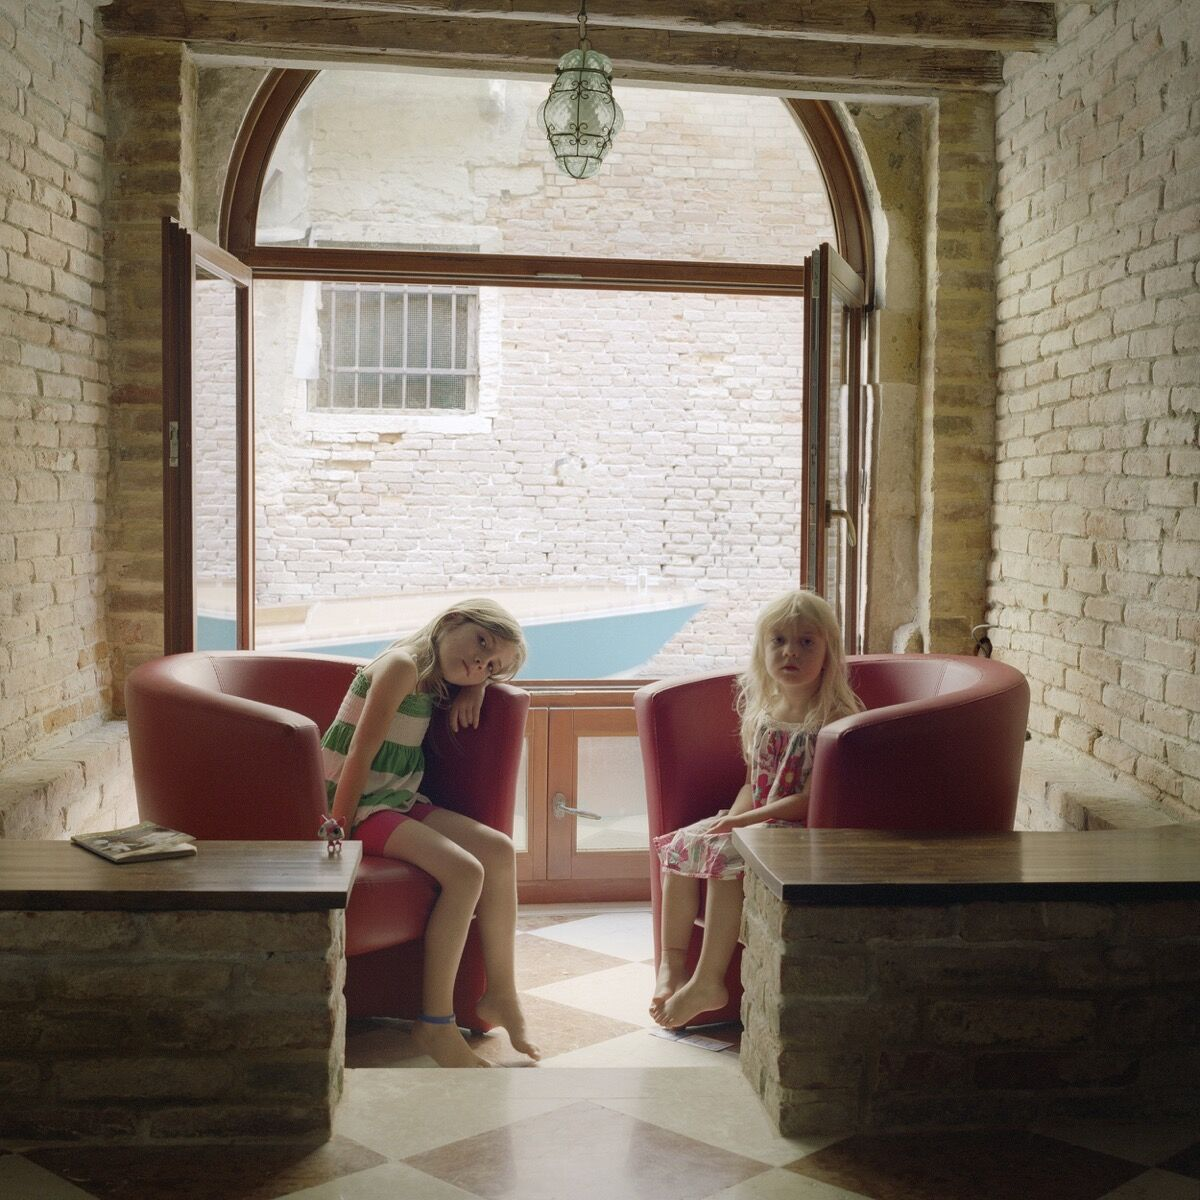 Tanja Hollander, Winona and Delila Wardwell, Venice, Italy, 2013. Courtesy of Tanja Hollander and MASS MoCA.